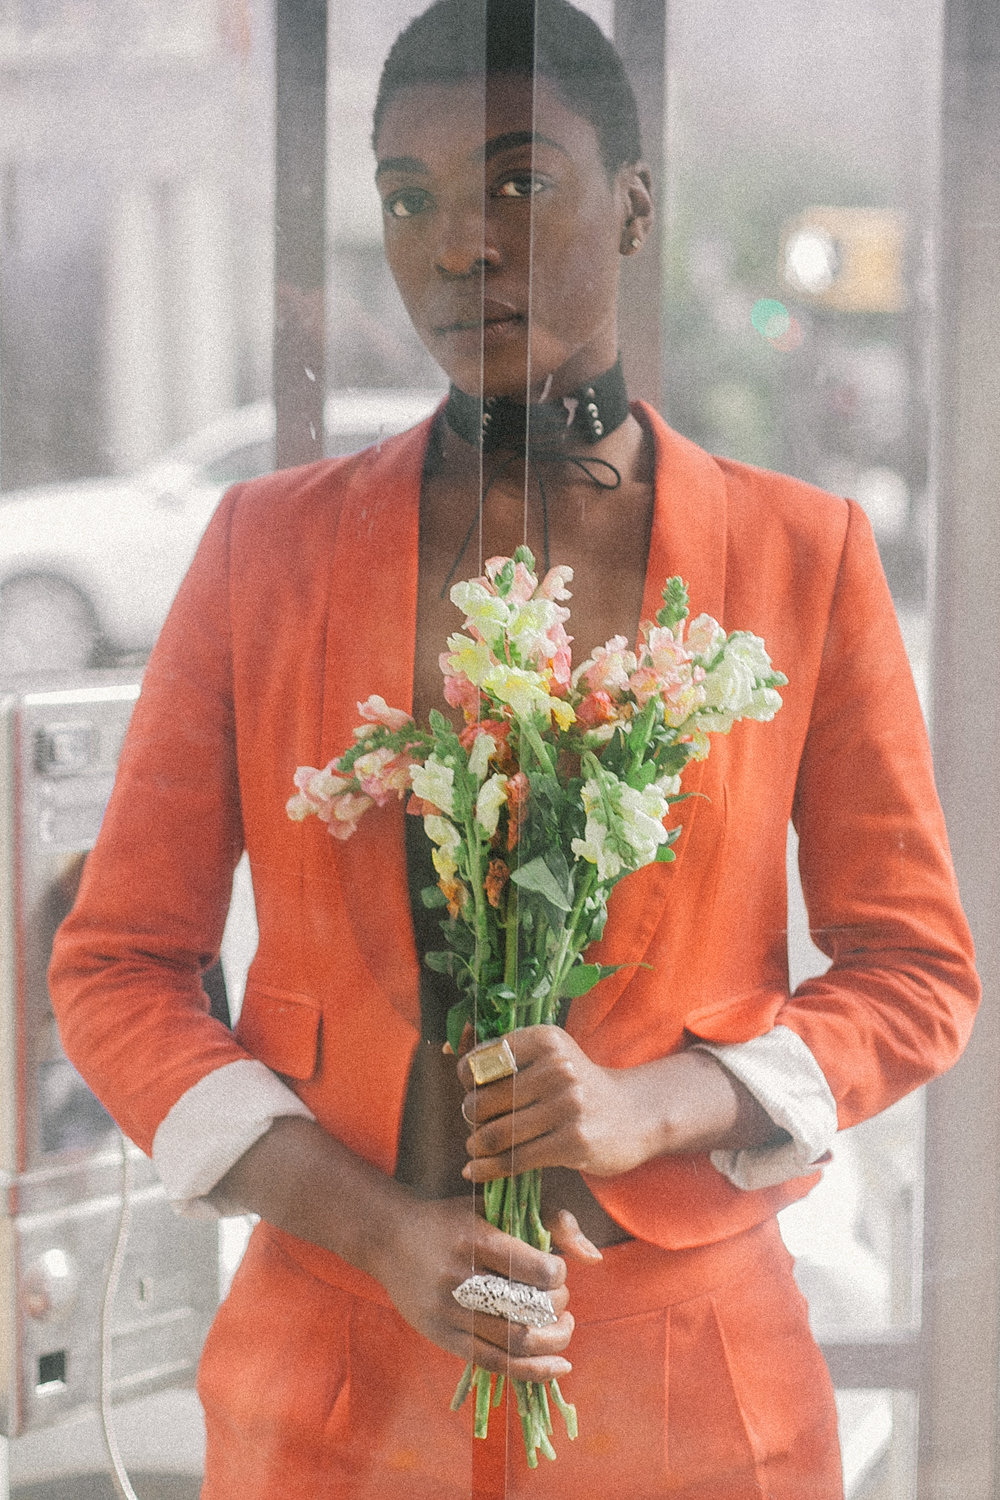 Personal Portrait Photography of model in orange suit captured by Jarrod Anderson